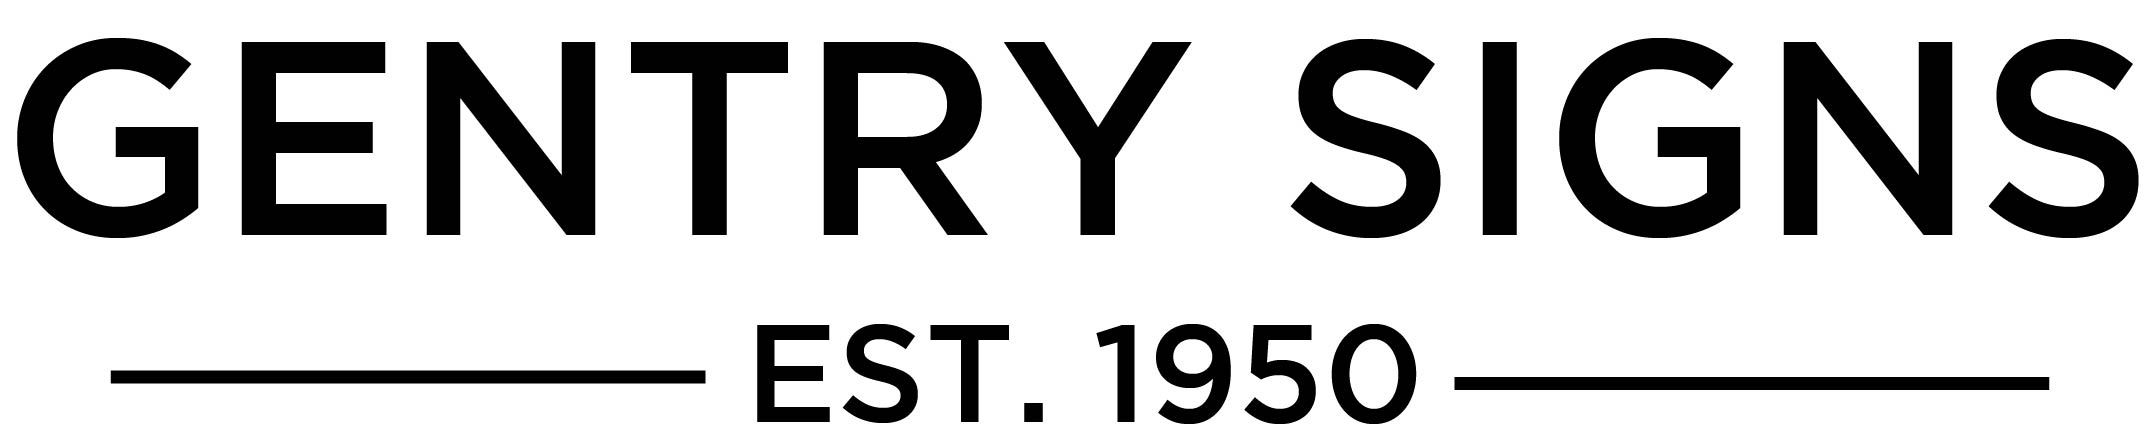 Gentry signs -horizontal logo - est 1950 Opens in new window